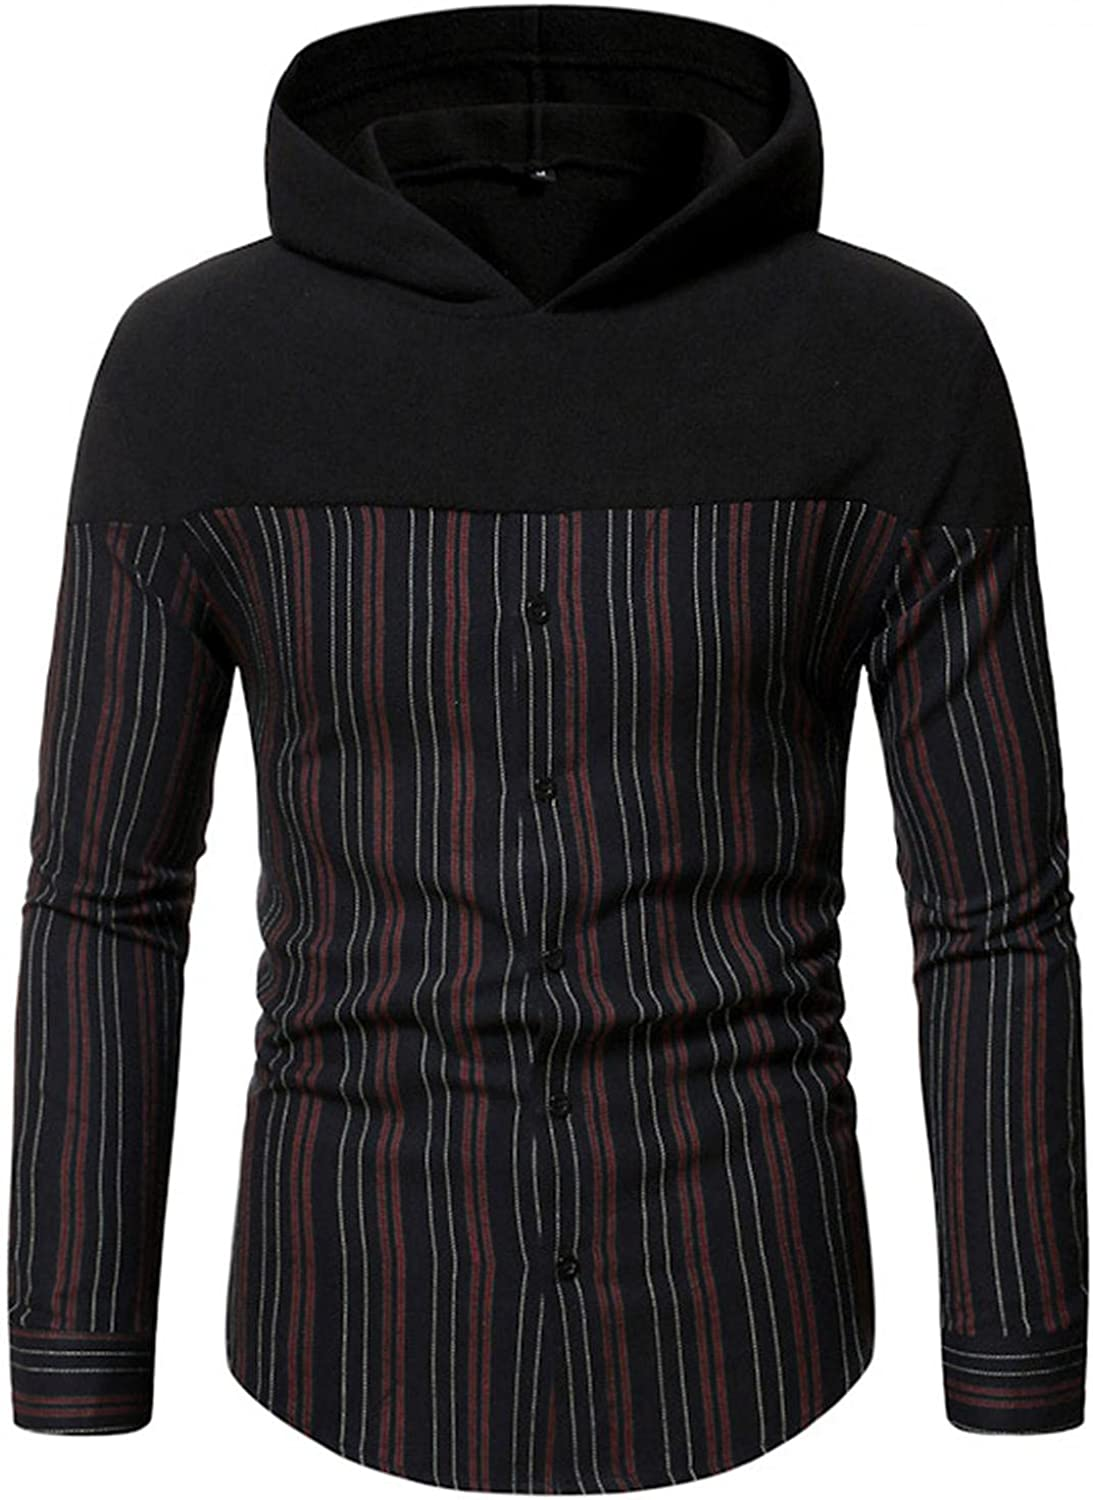 Hoodies for Men,Casual Splicing Plaid Printed Hooded Sweatshirt Checked Button Mens Hoodies Pullover Shirts Tops